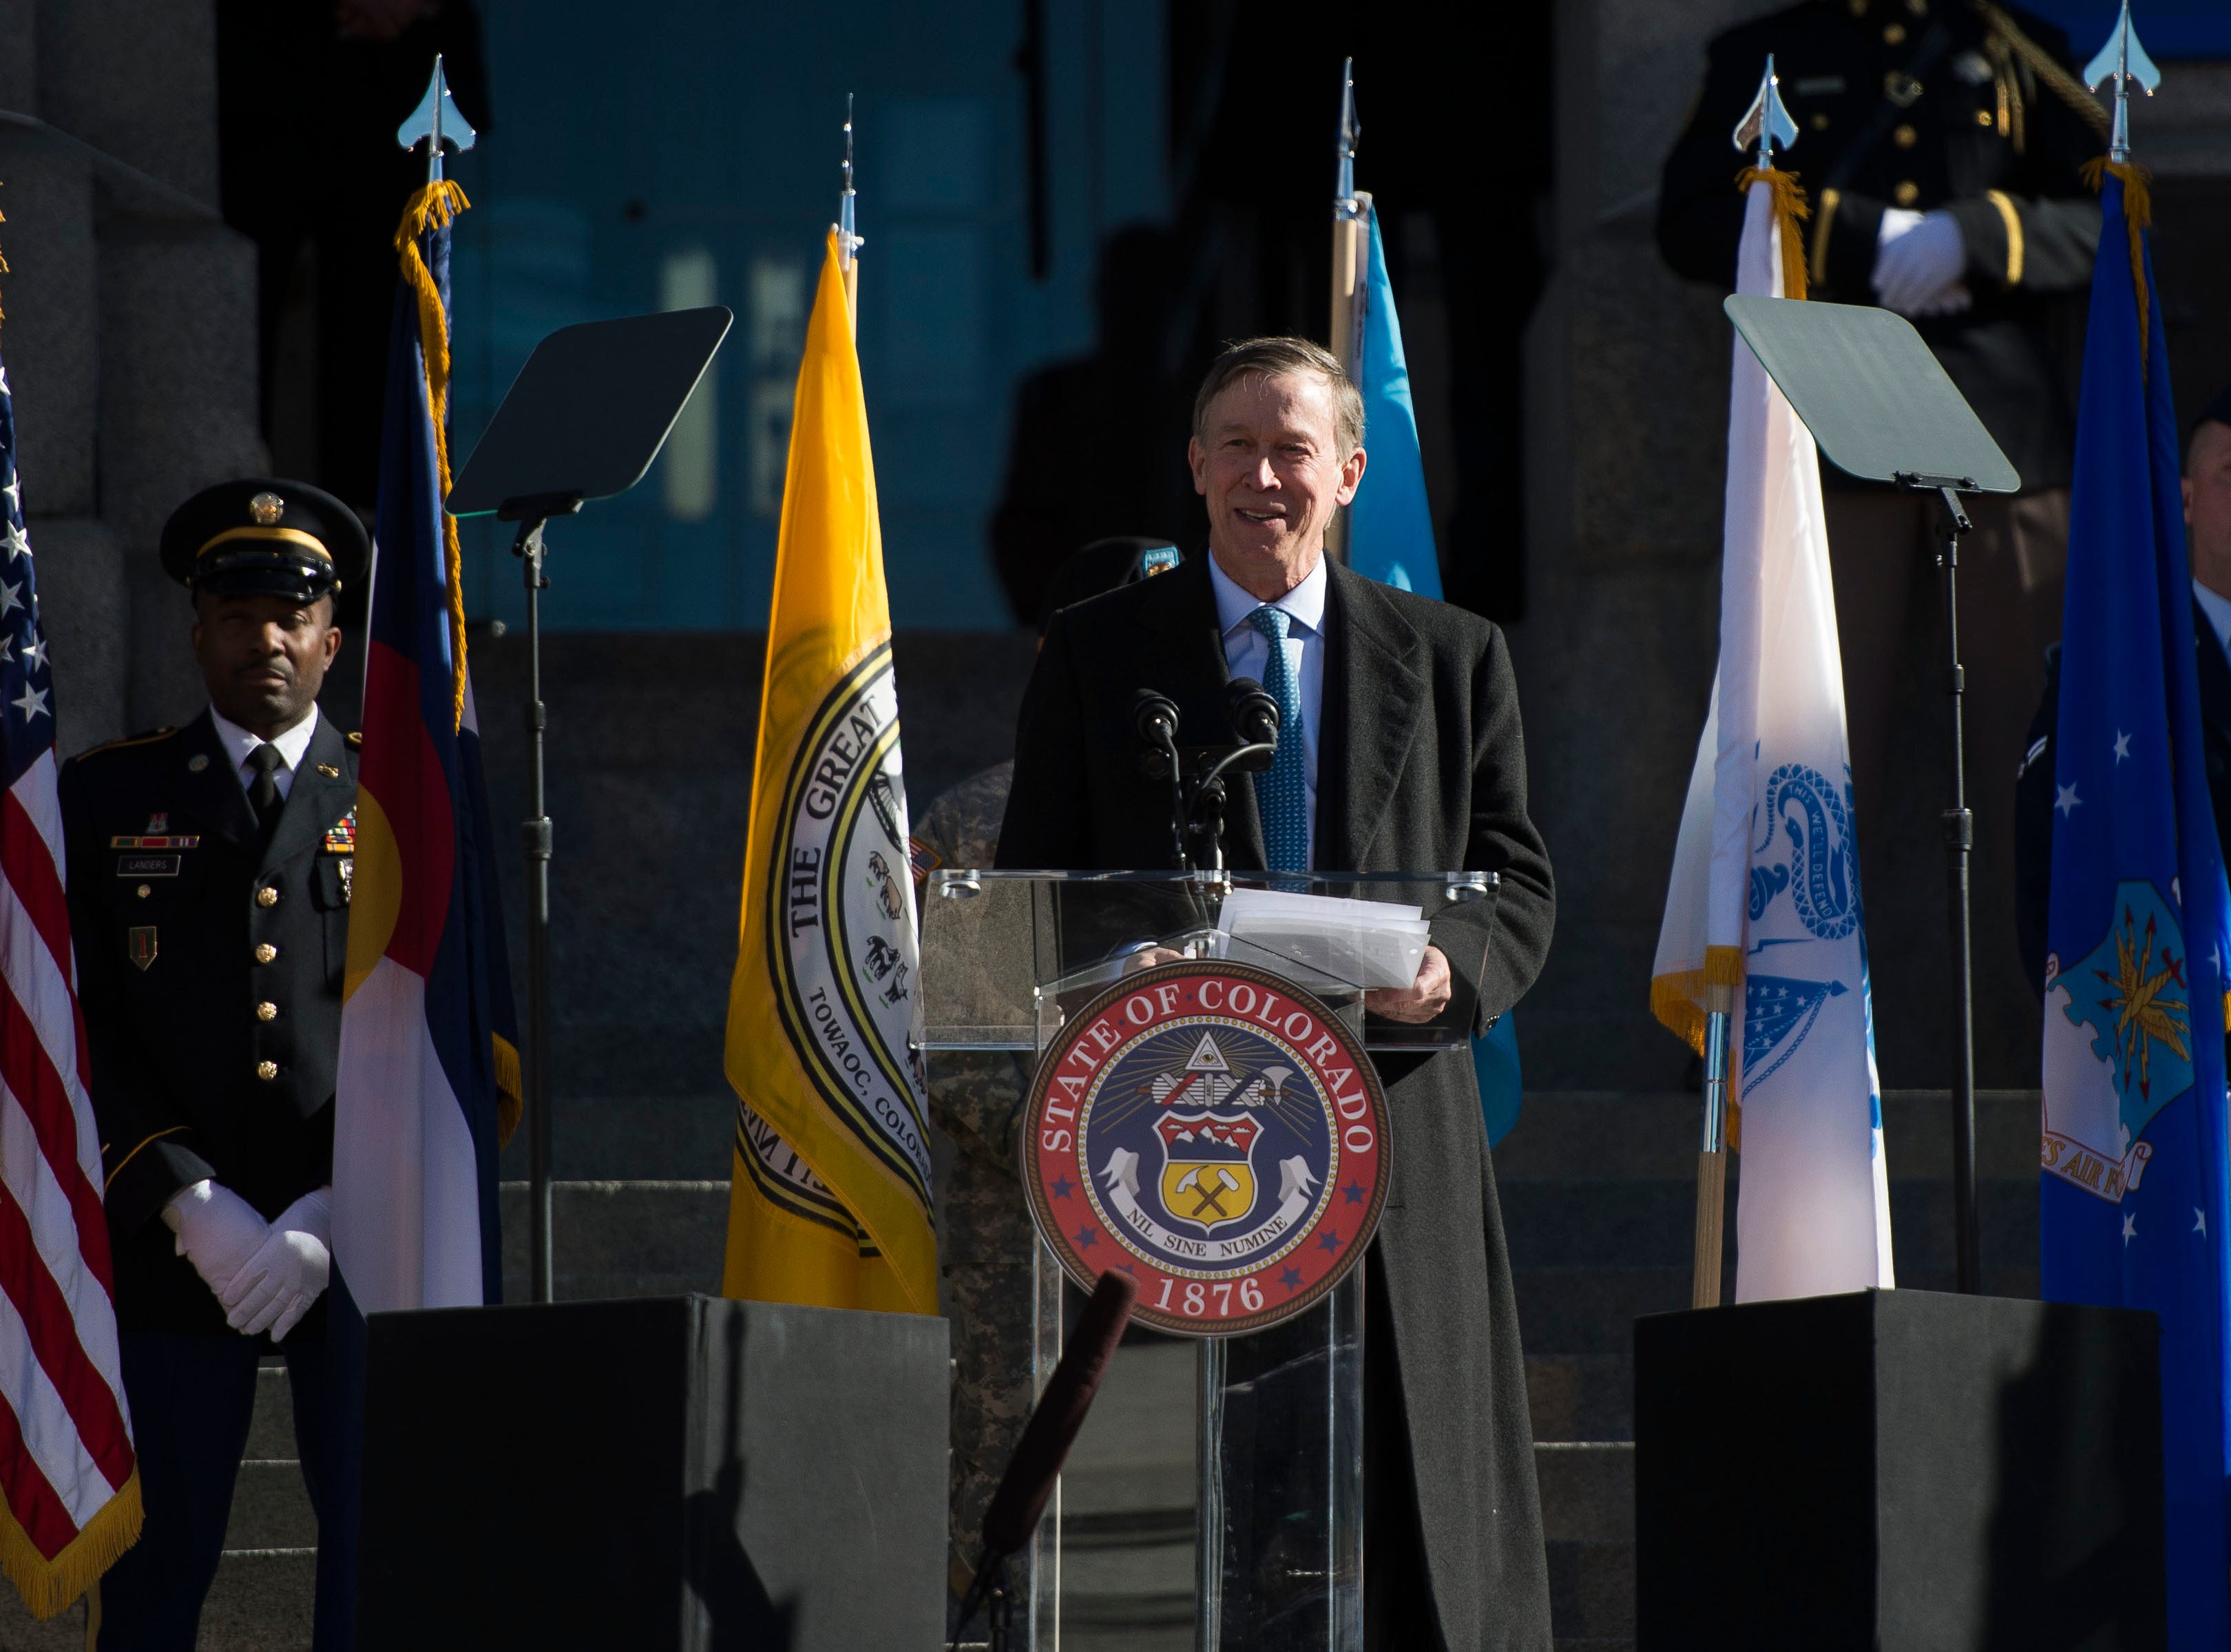 Outgoing Colorado State Governor John Hickenlooper gives a speech during the inauguration of Colorado State Governor Jared Polis on Tuesday, Jan. 8, 2019, in front of the Colorado State Capital building in Denver, Colo.